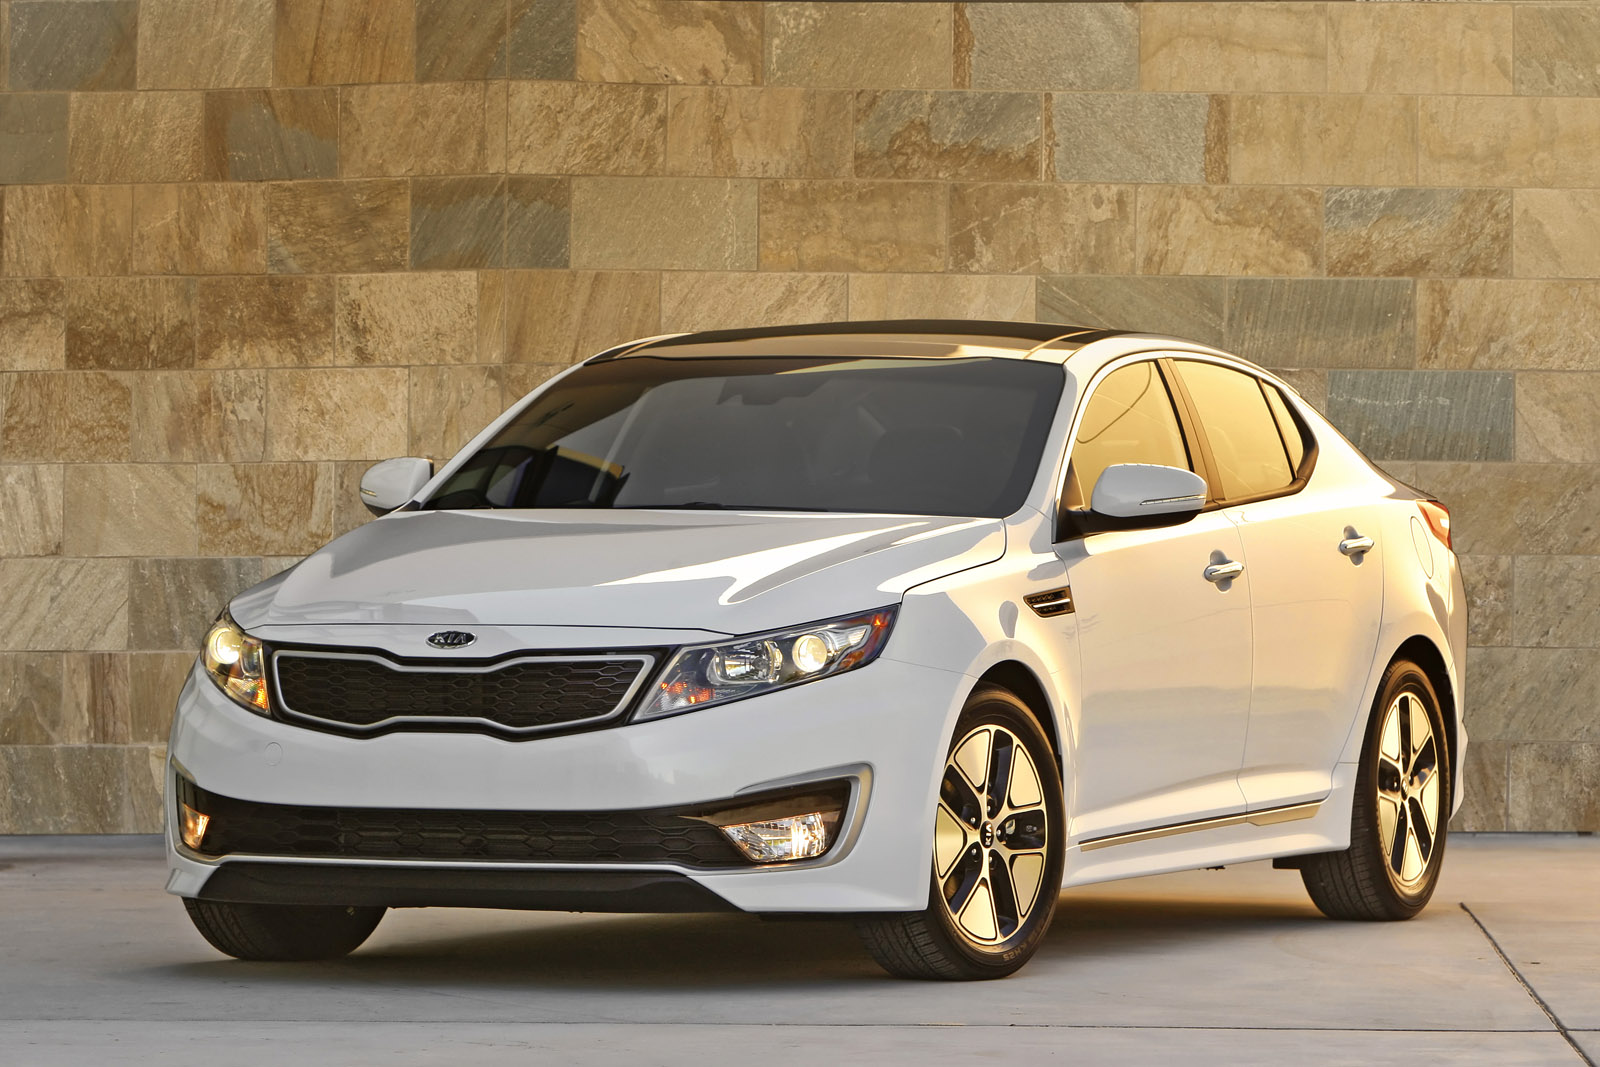 2019 Kia Optima photo - 4